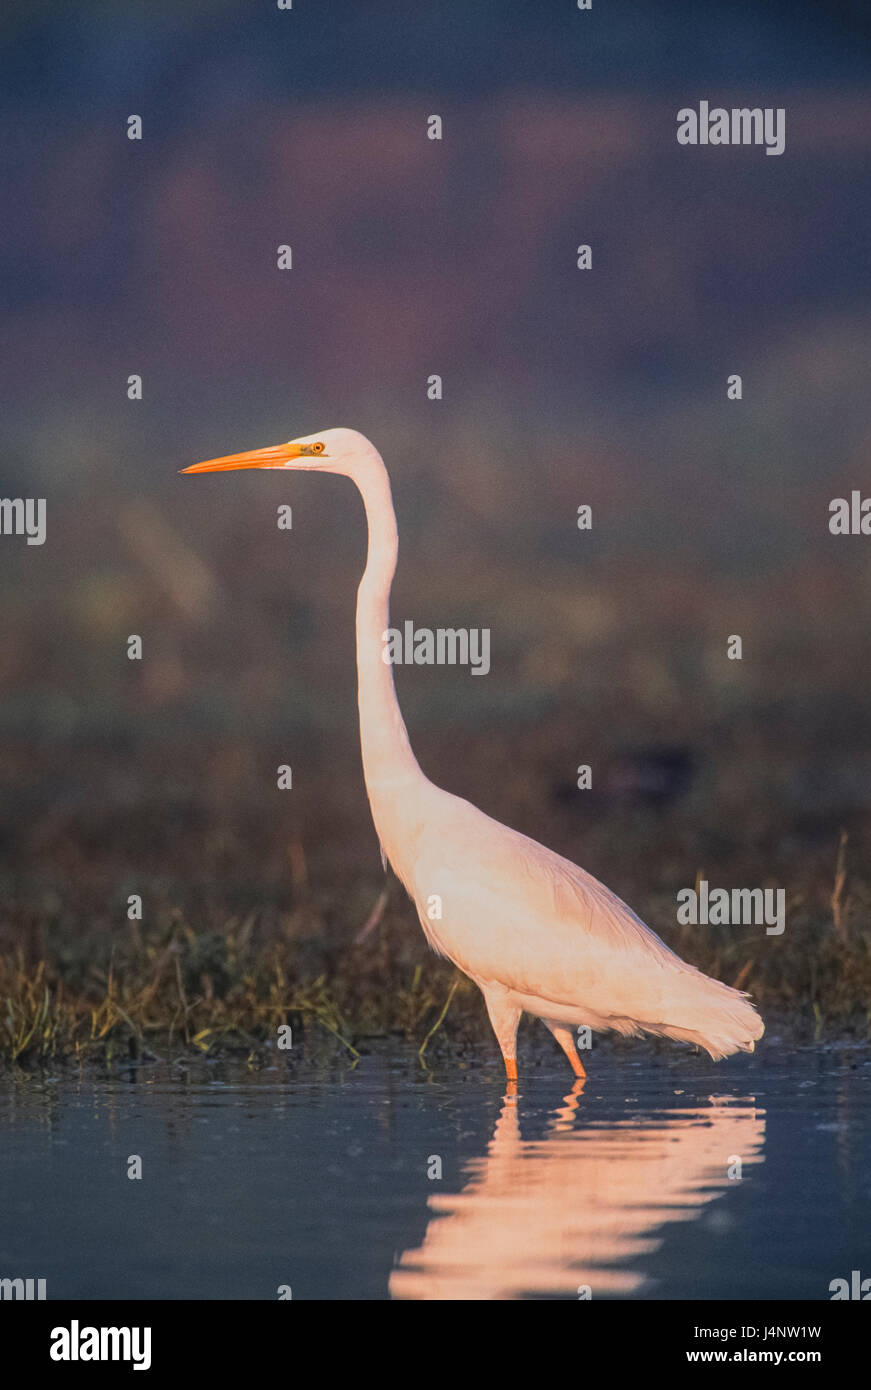 Great White Egret, Great Egret, Common Egret, Large Egret or (in the Old World) Great White Heron, Ardea alba, Keoladeo - Stock Image